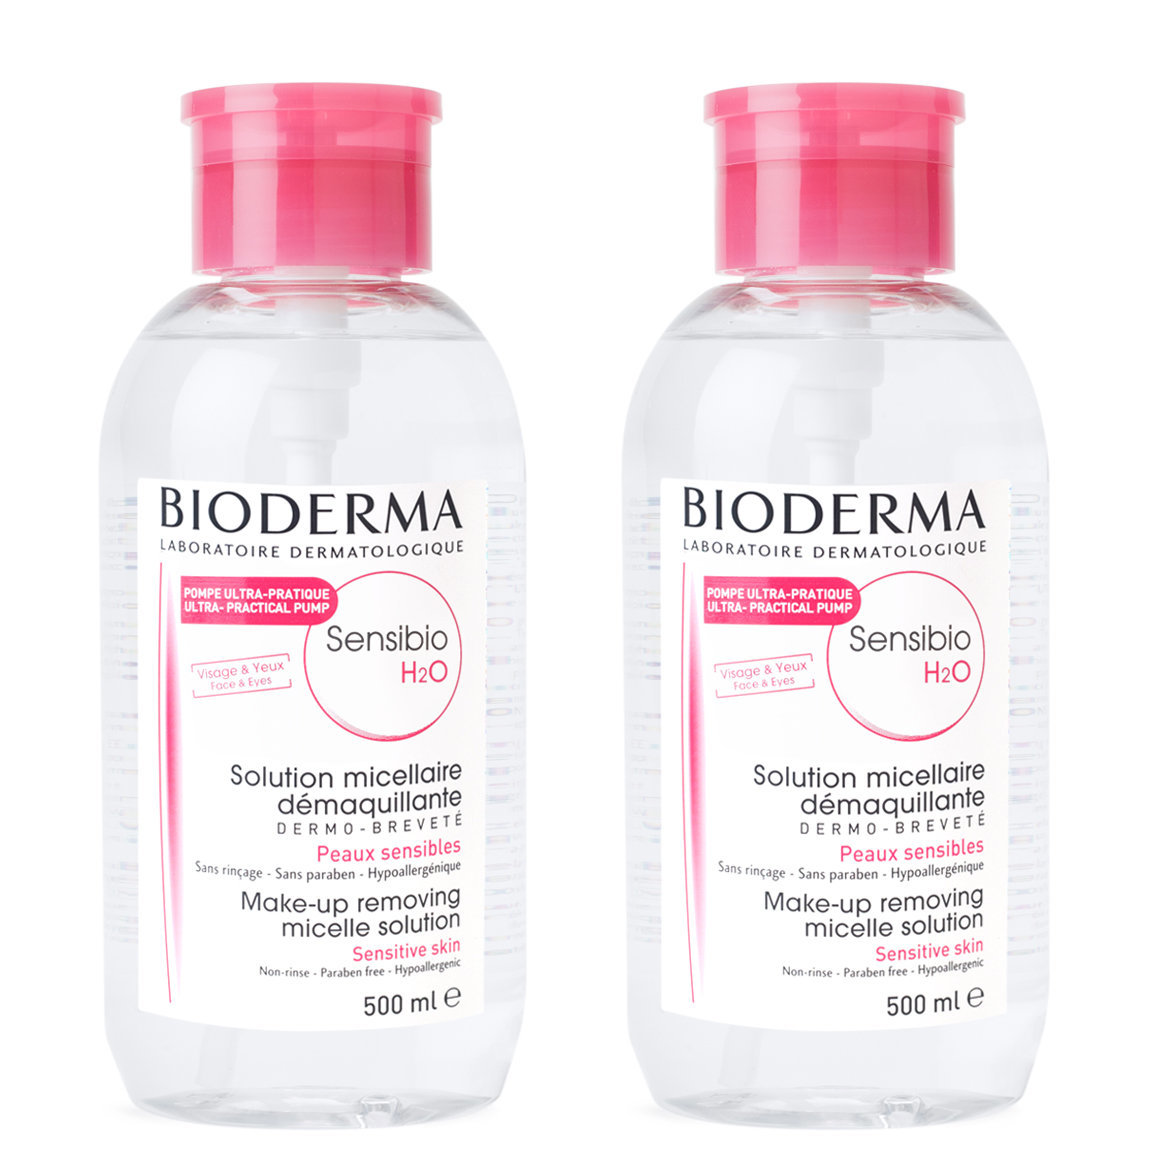 Bioderma Sensibio H2O Pump 500 ml Duo product smear.